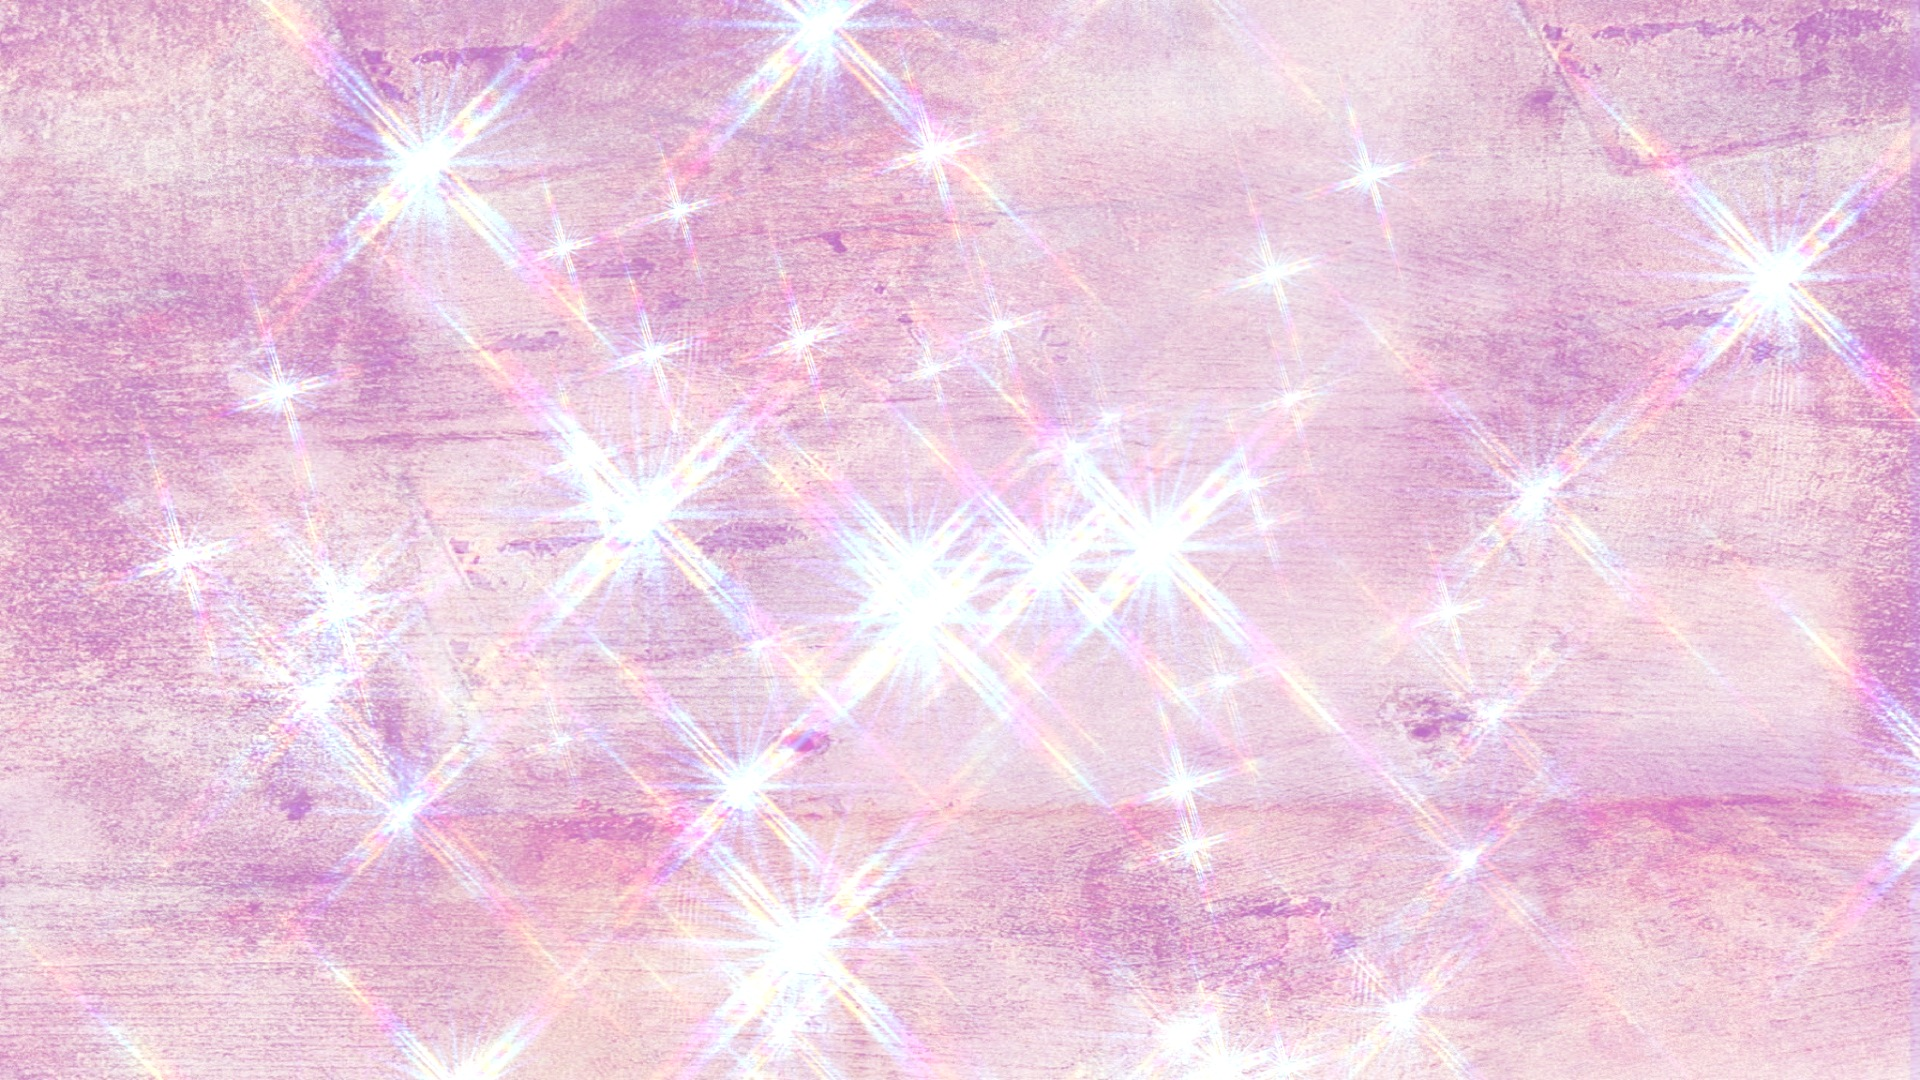 Textured background images eztechtraining pink textured with white lens flare star background thecheapjerseys Gallery